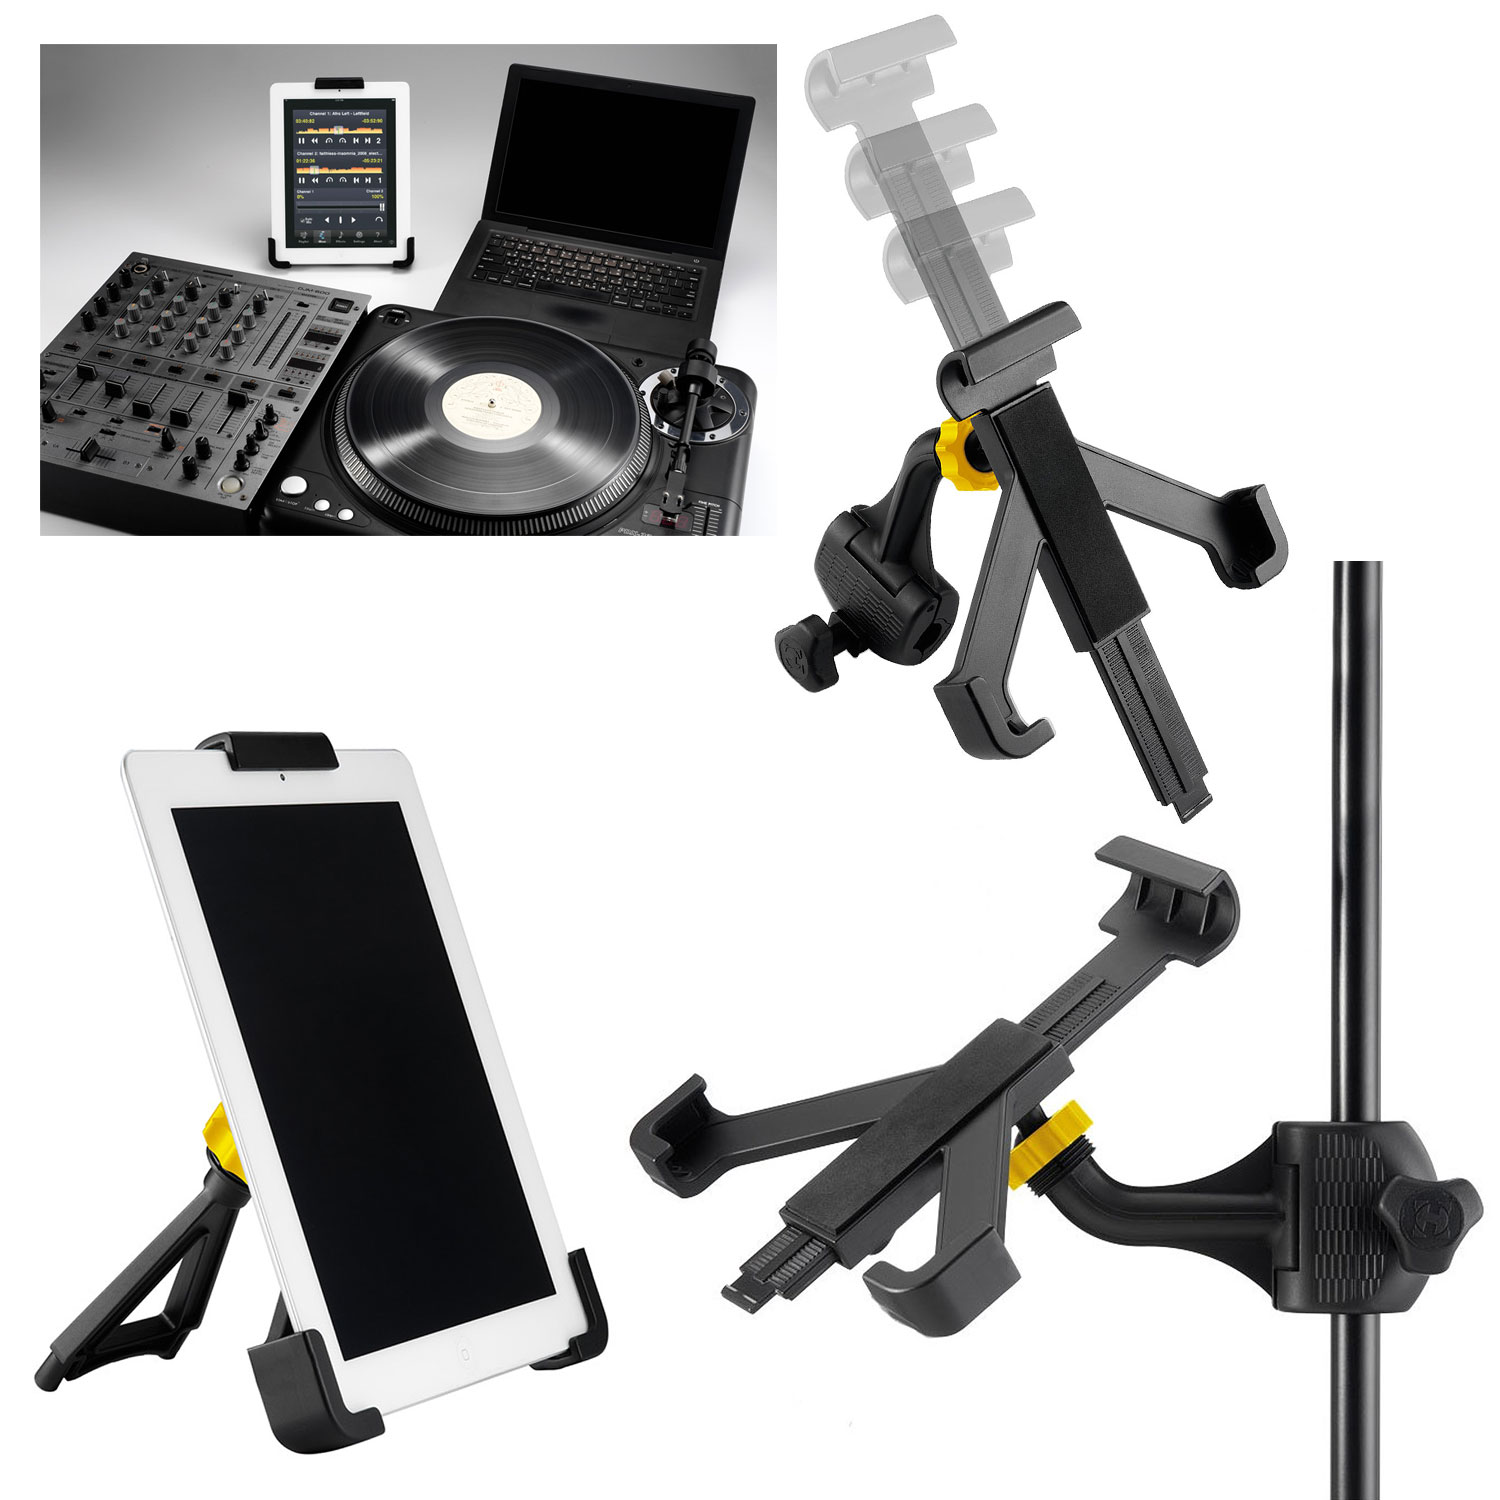 Tablet ipad microphone mic stand holder hercules tab grab - Hercules tablet stand ...